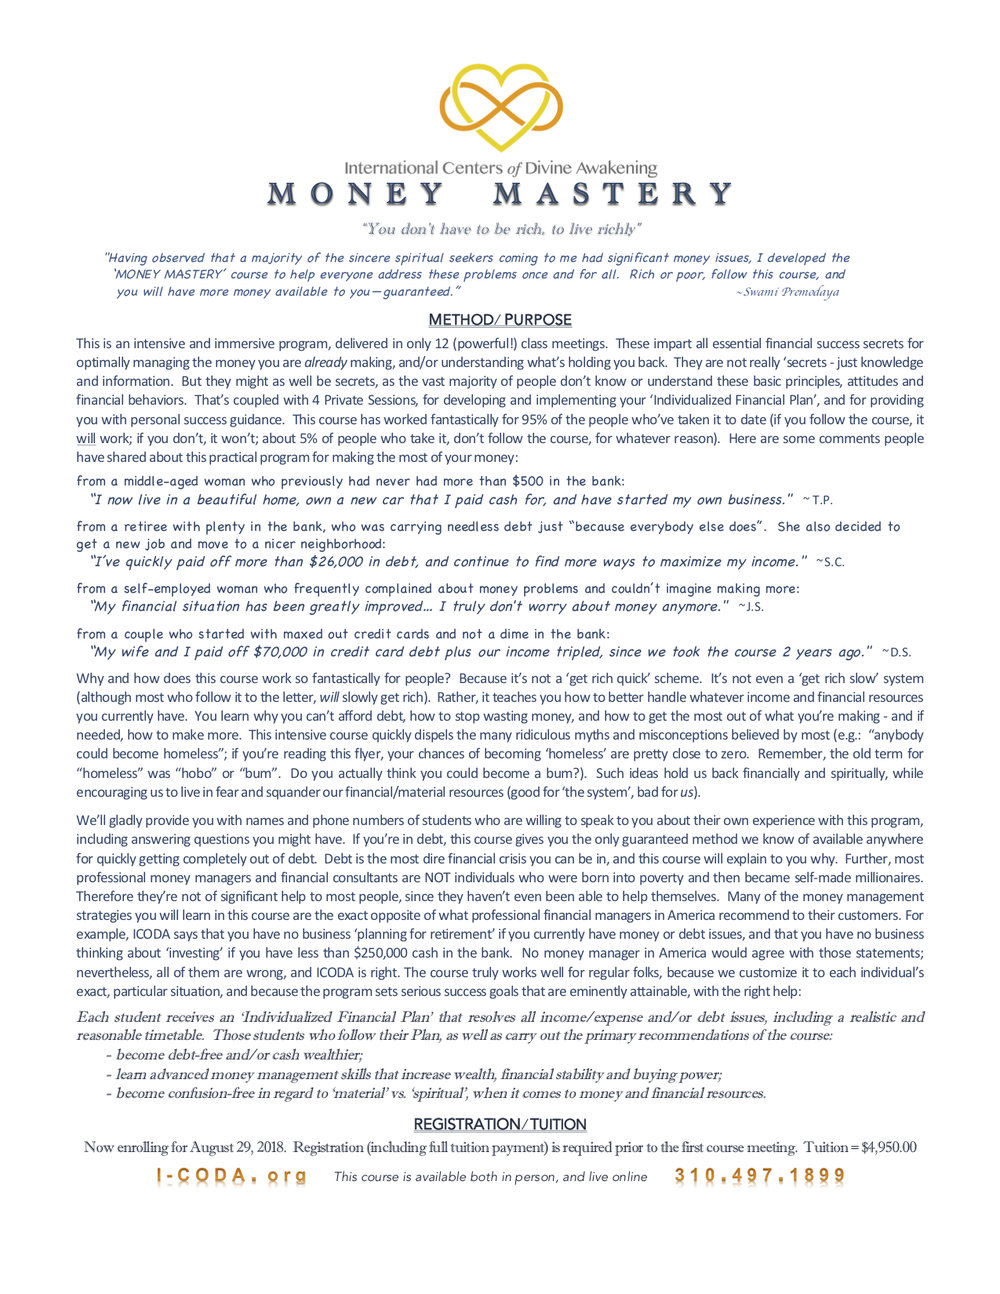 Money Mastery information (1).jpg